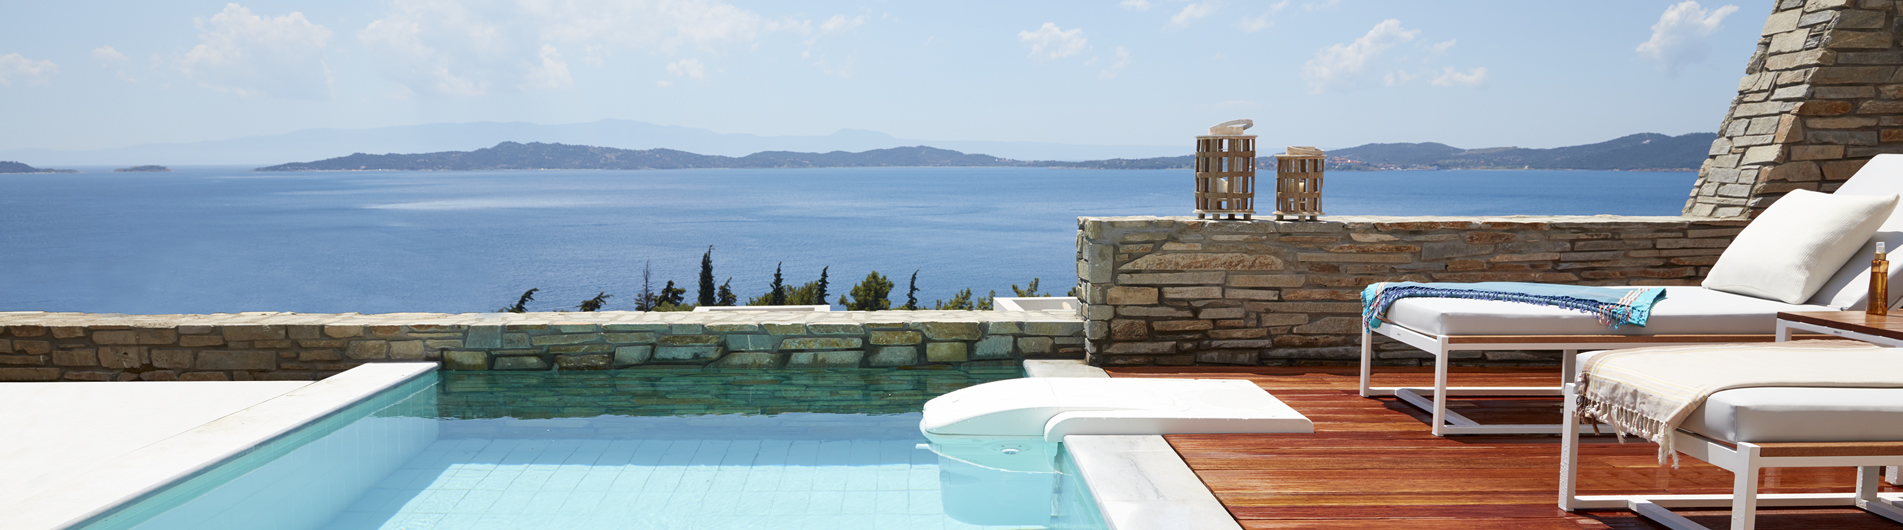 Self Catering & Villa Holidays in Greece